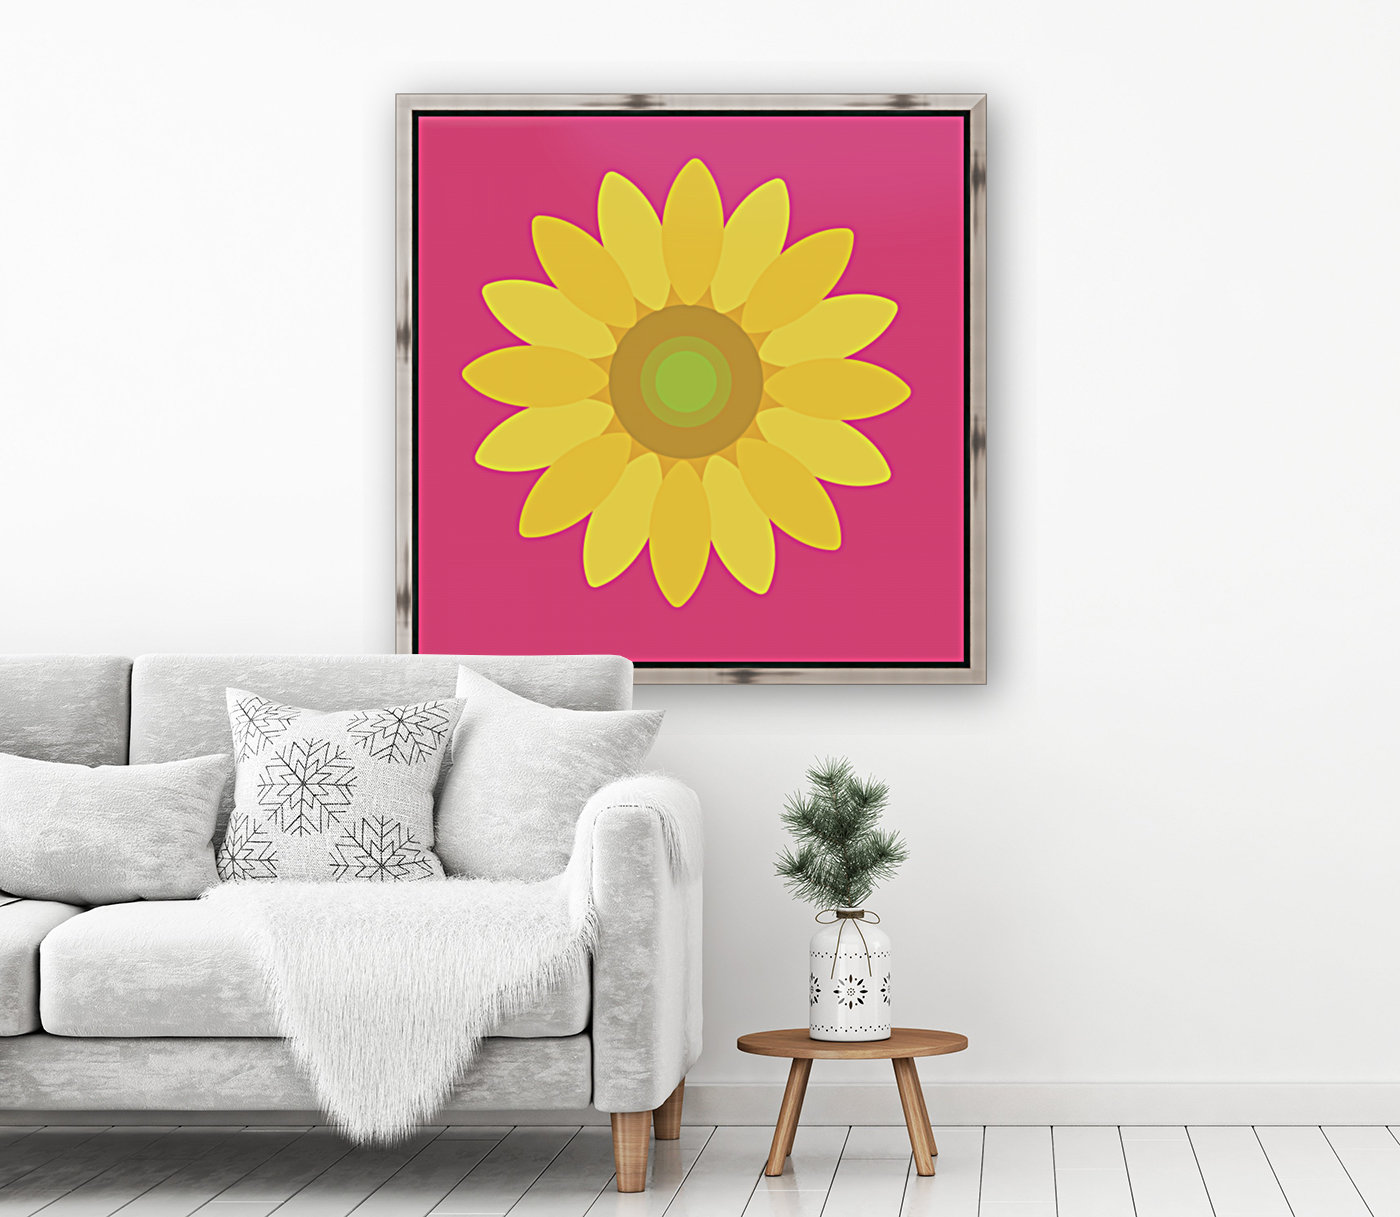 Sunflower (10)_1559876729.1568 with Floating Frame